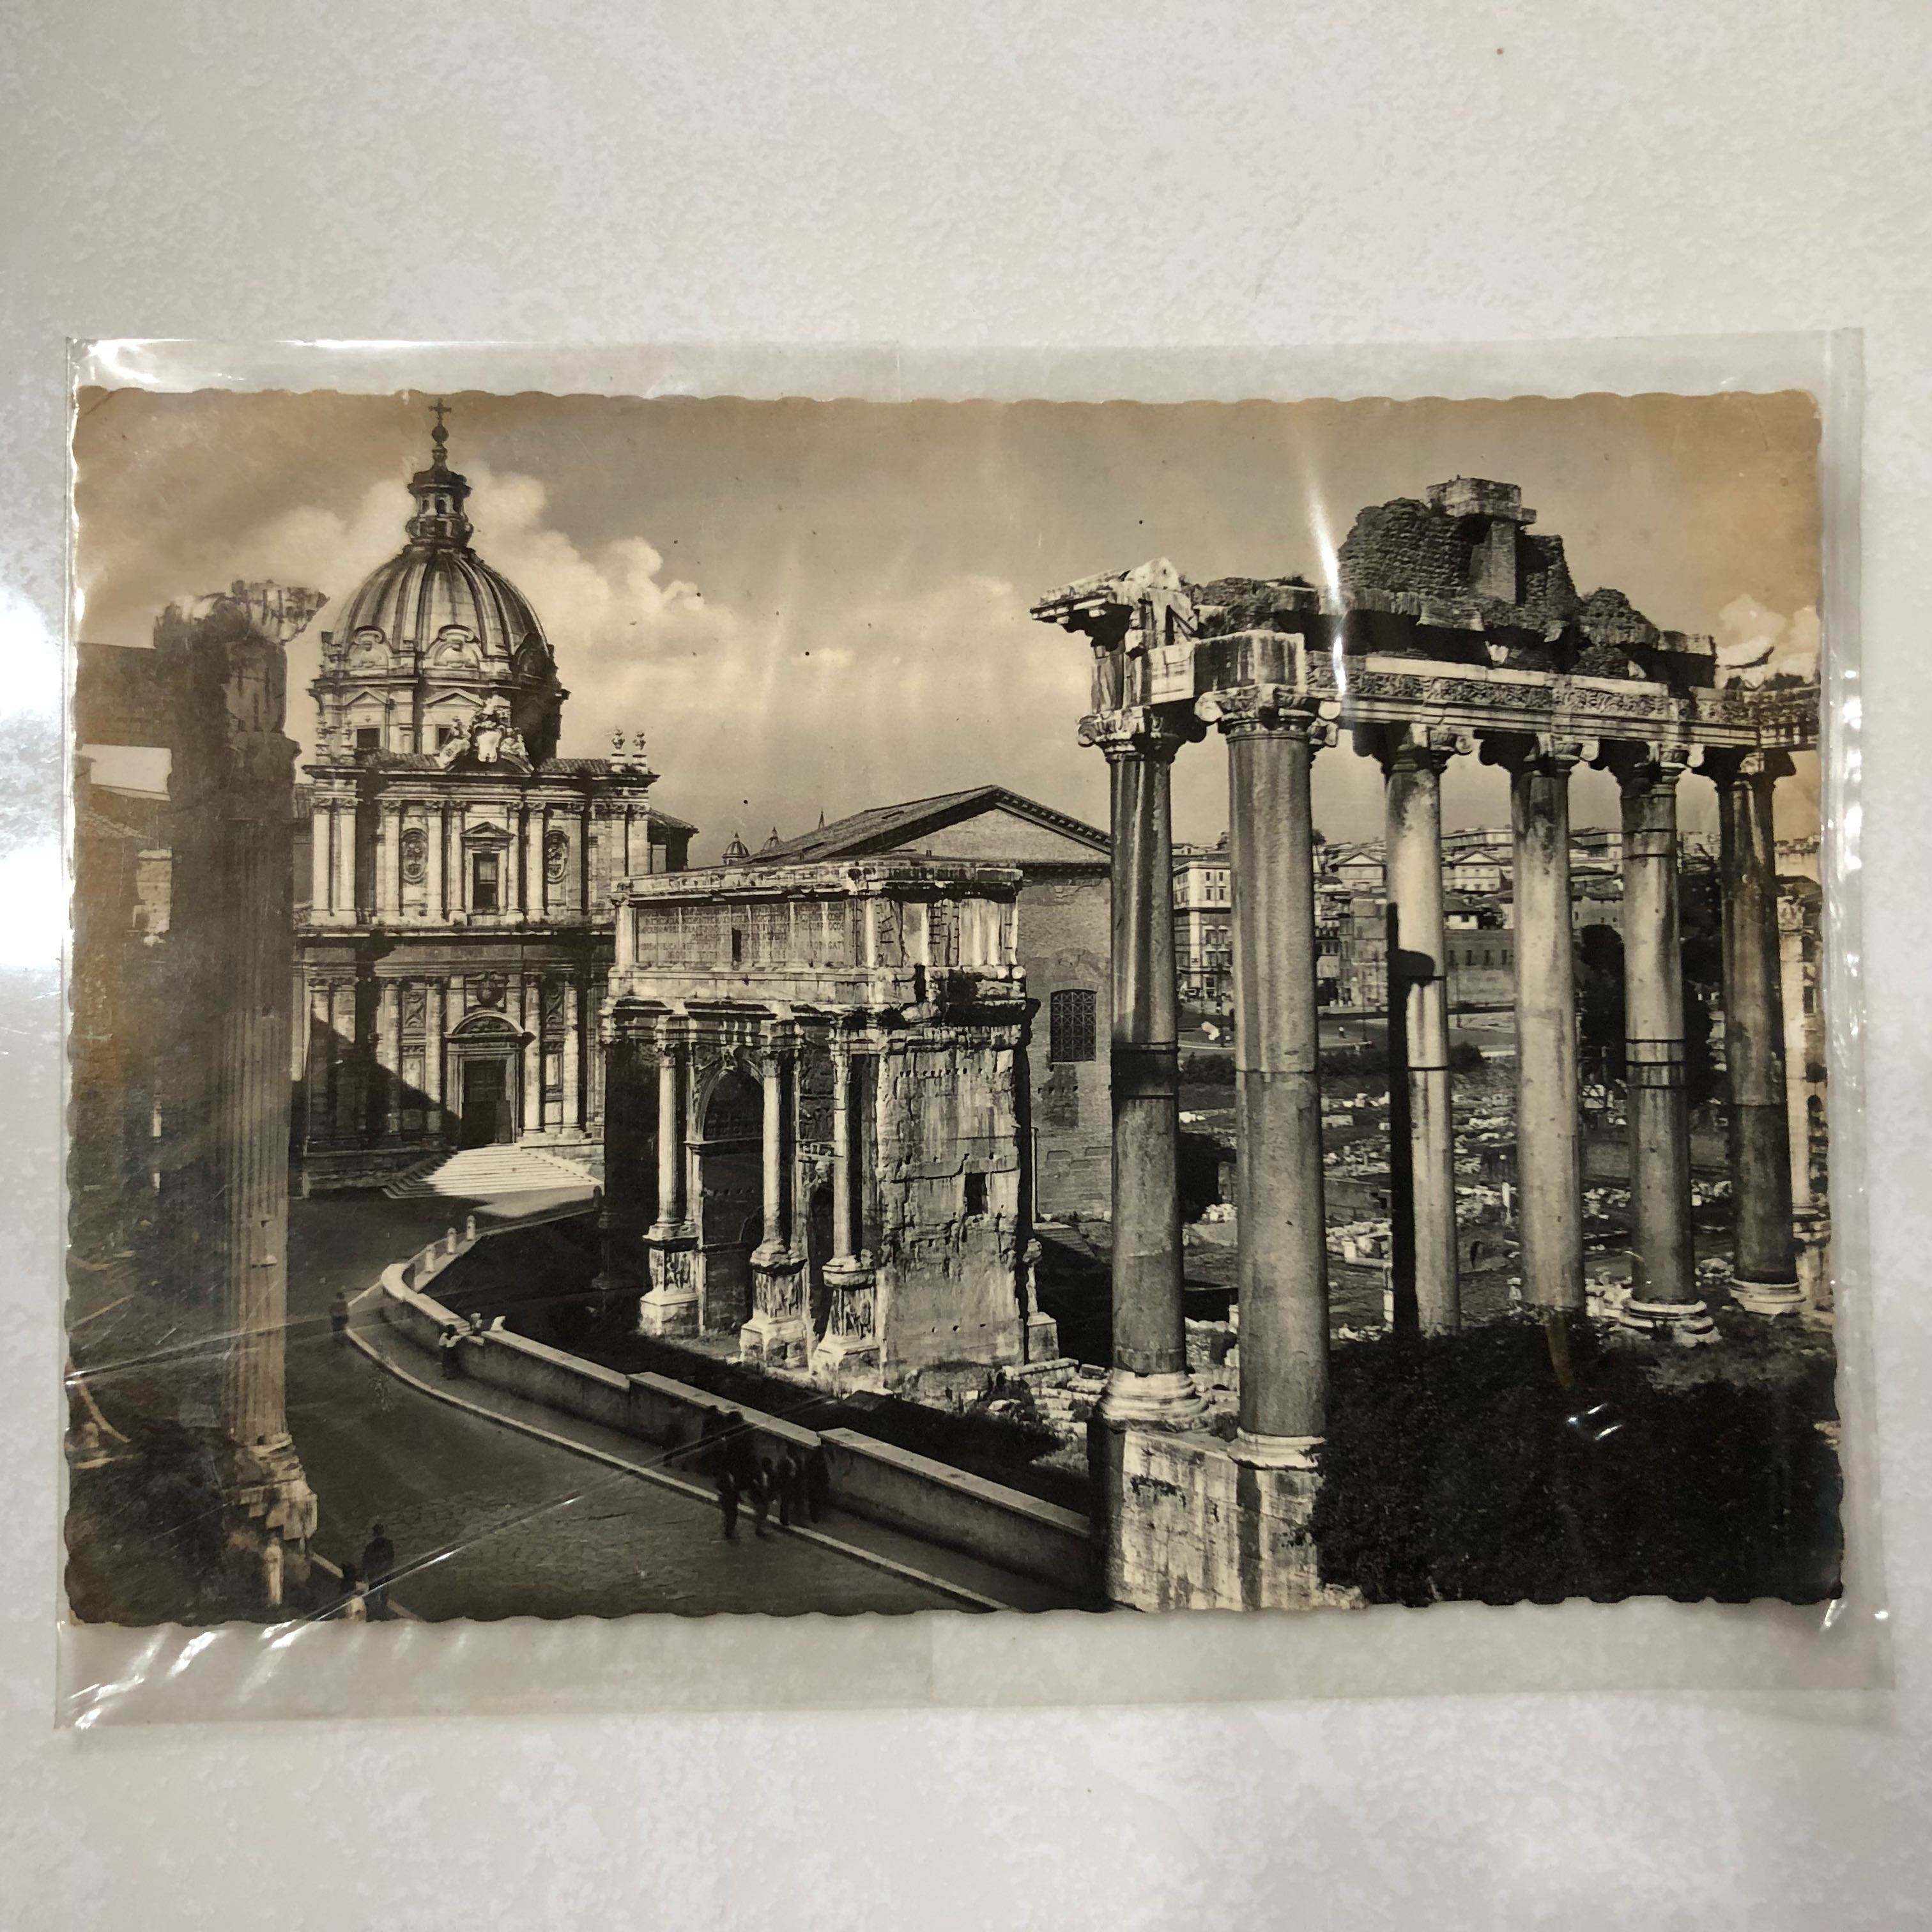 Black And White Postcard From >> Vintage Old Postcard Old Black White Post Card From Roma Italy